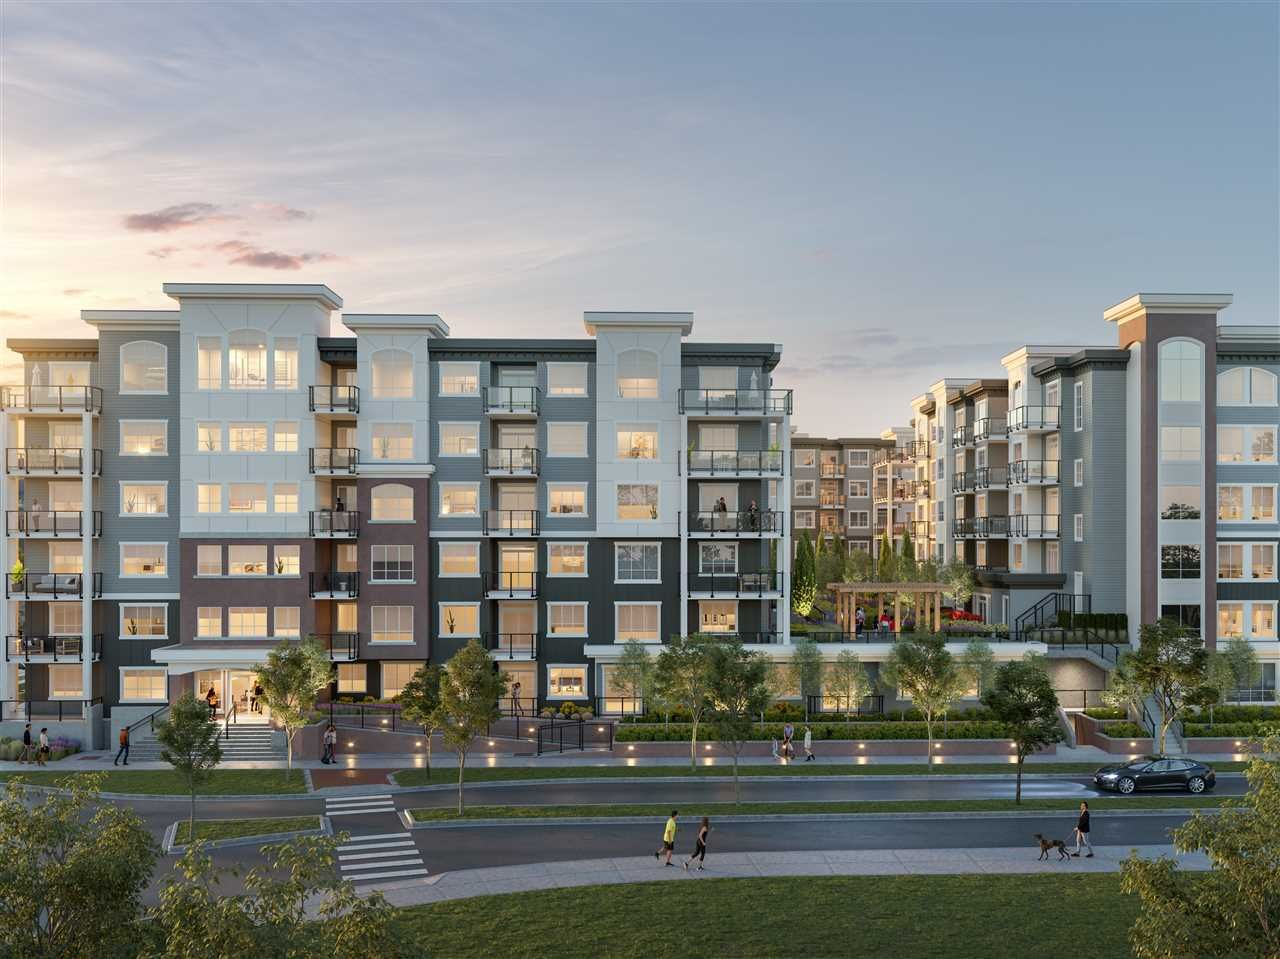 """Main Photo: 415D 2180 KELLY Avenue in Port Coquitlam: Central Pt Coquitlam Condo for sale in """"Montrose Square"""" : MLS®# R2538522"""